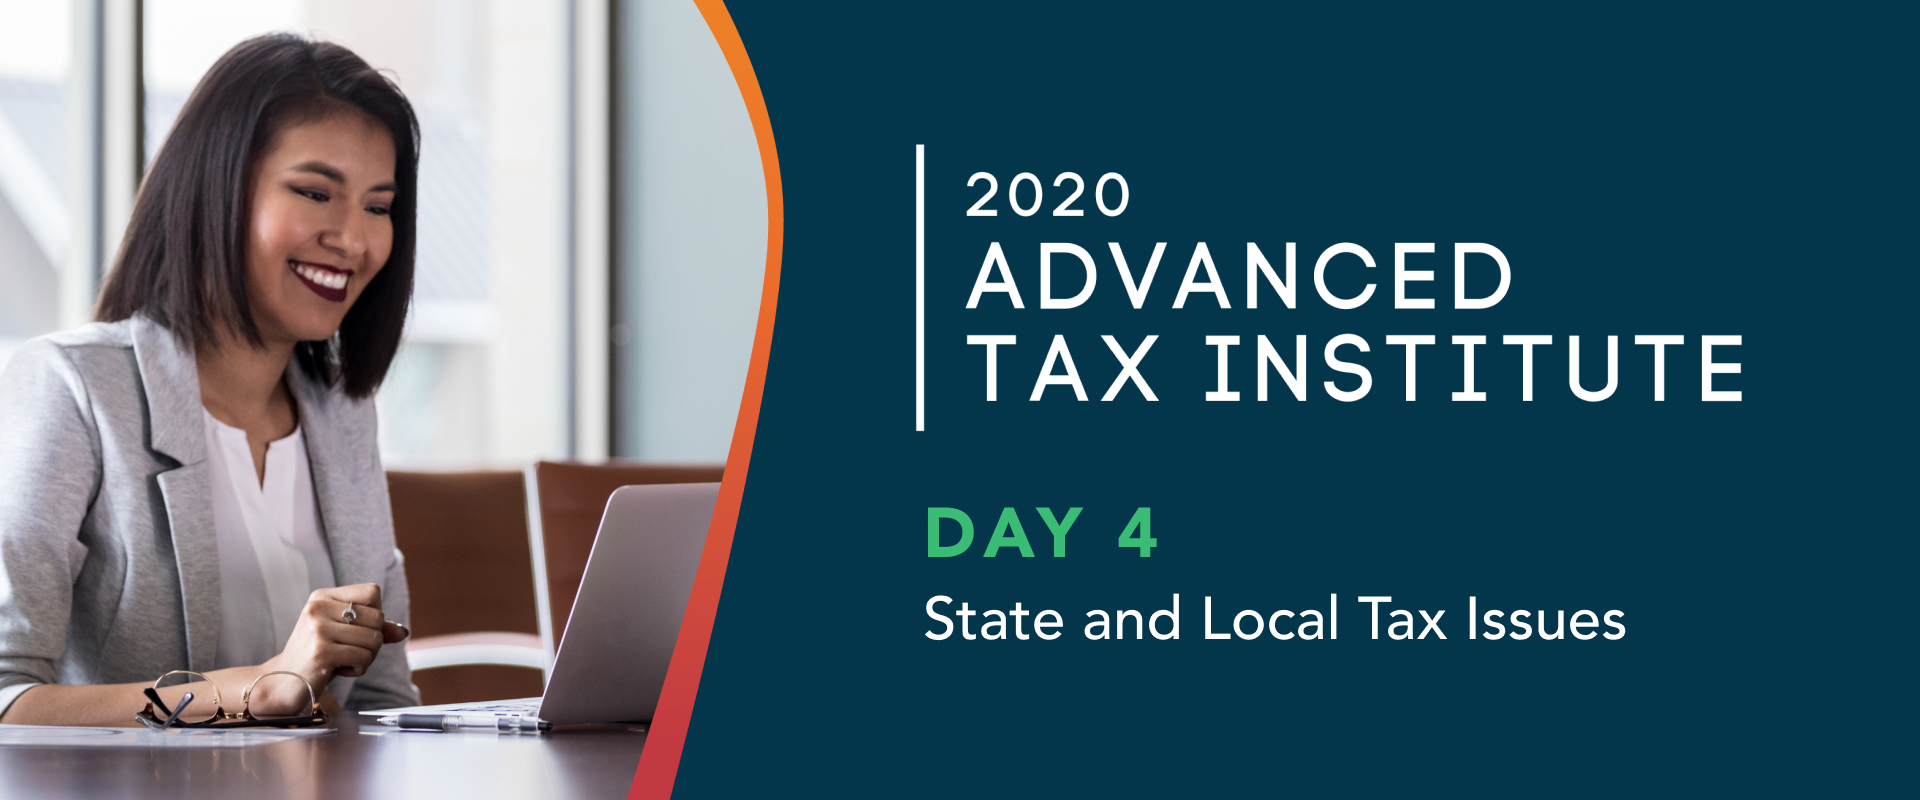 ADVANCED TAX INSTITUTE DAY 4 – State and Local Tax Issues